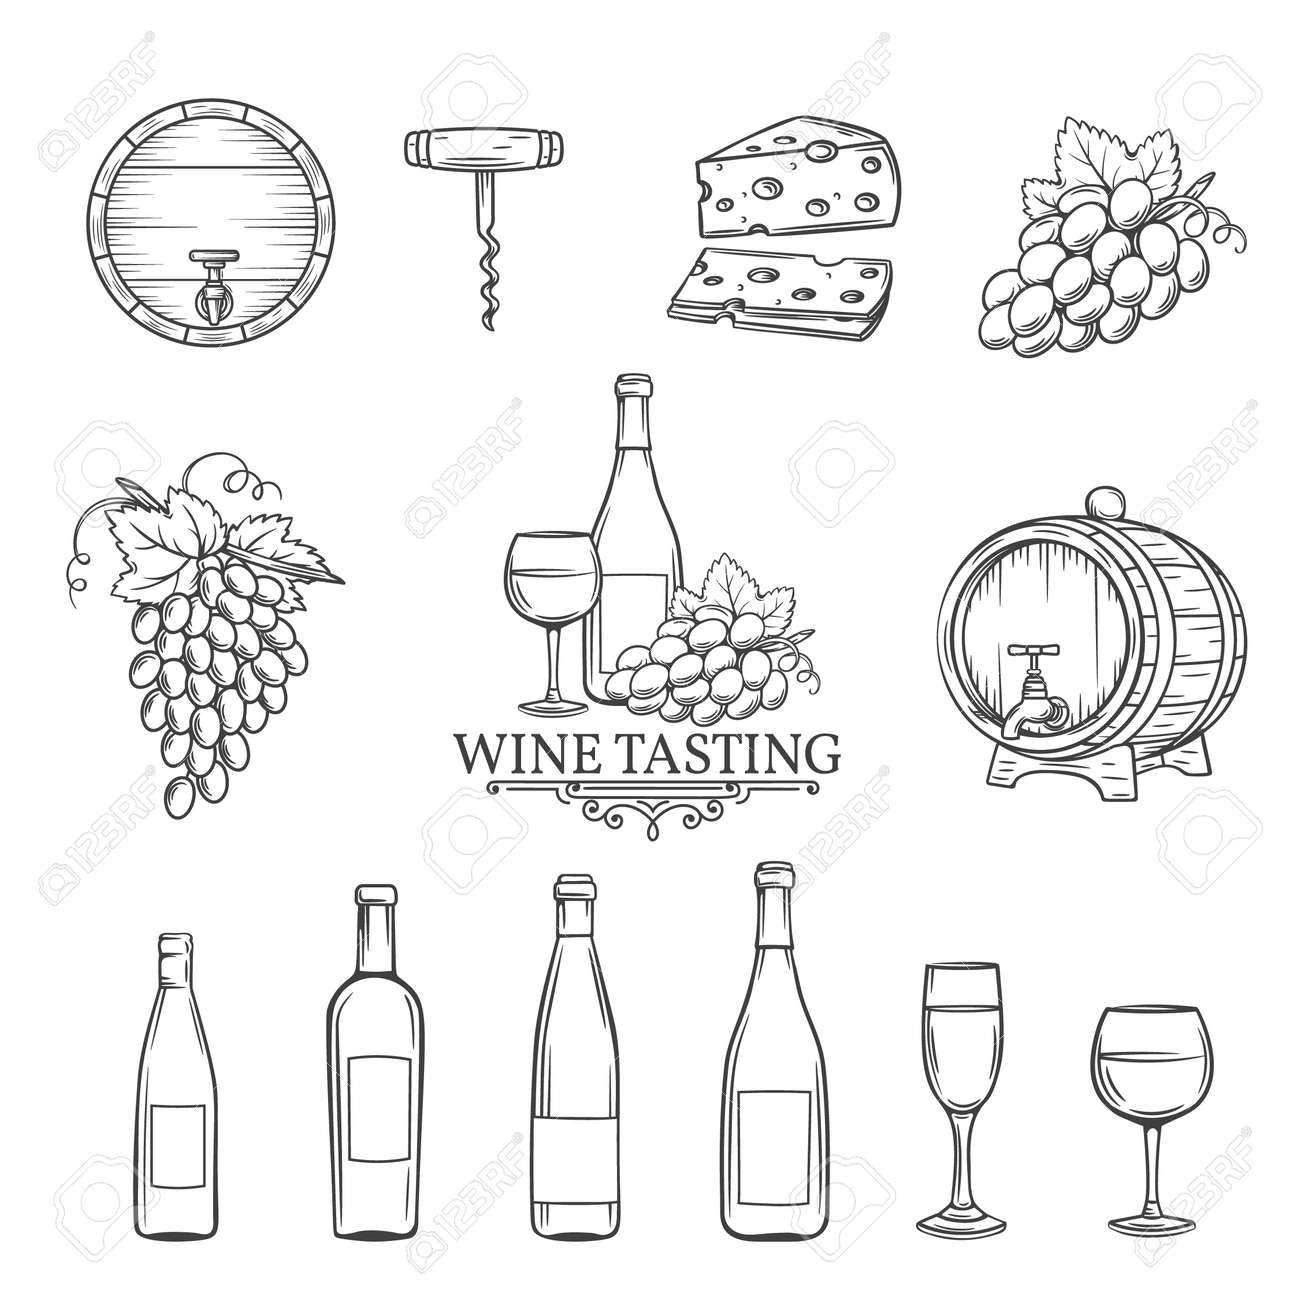 Hand draw wine icons set on white. Decorative wine icons . Monochrome icons wine in old style for the design of wine labels cards brochures. Wine vector illustration. - 55684132